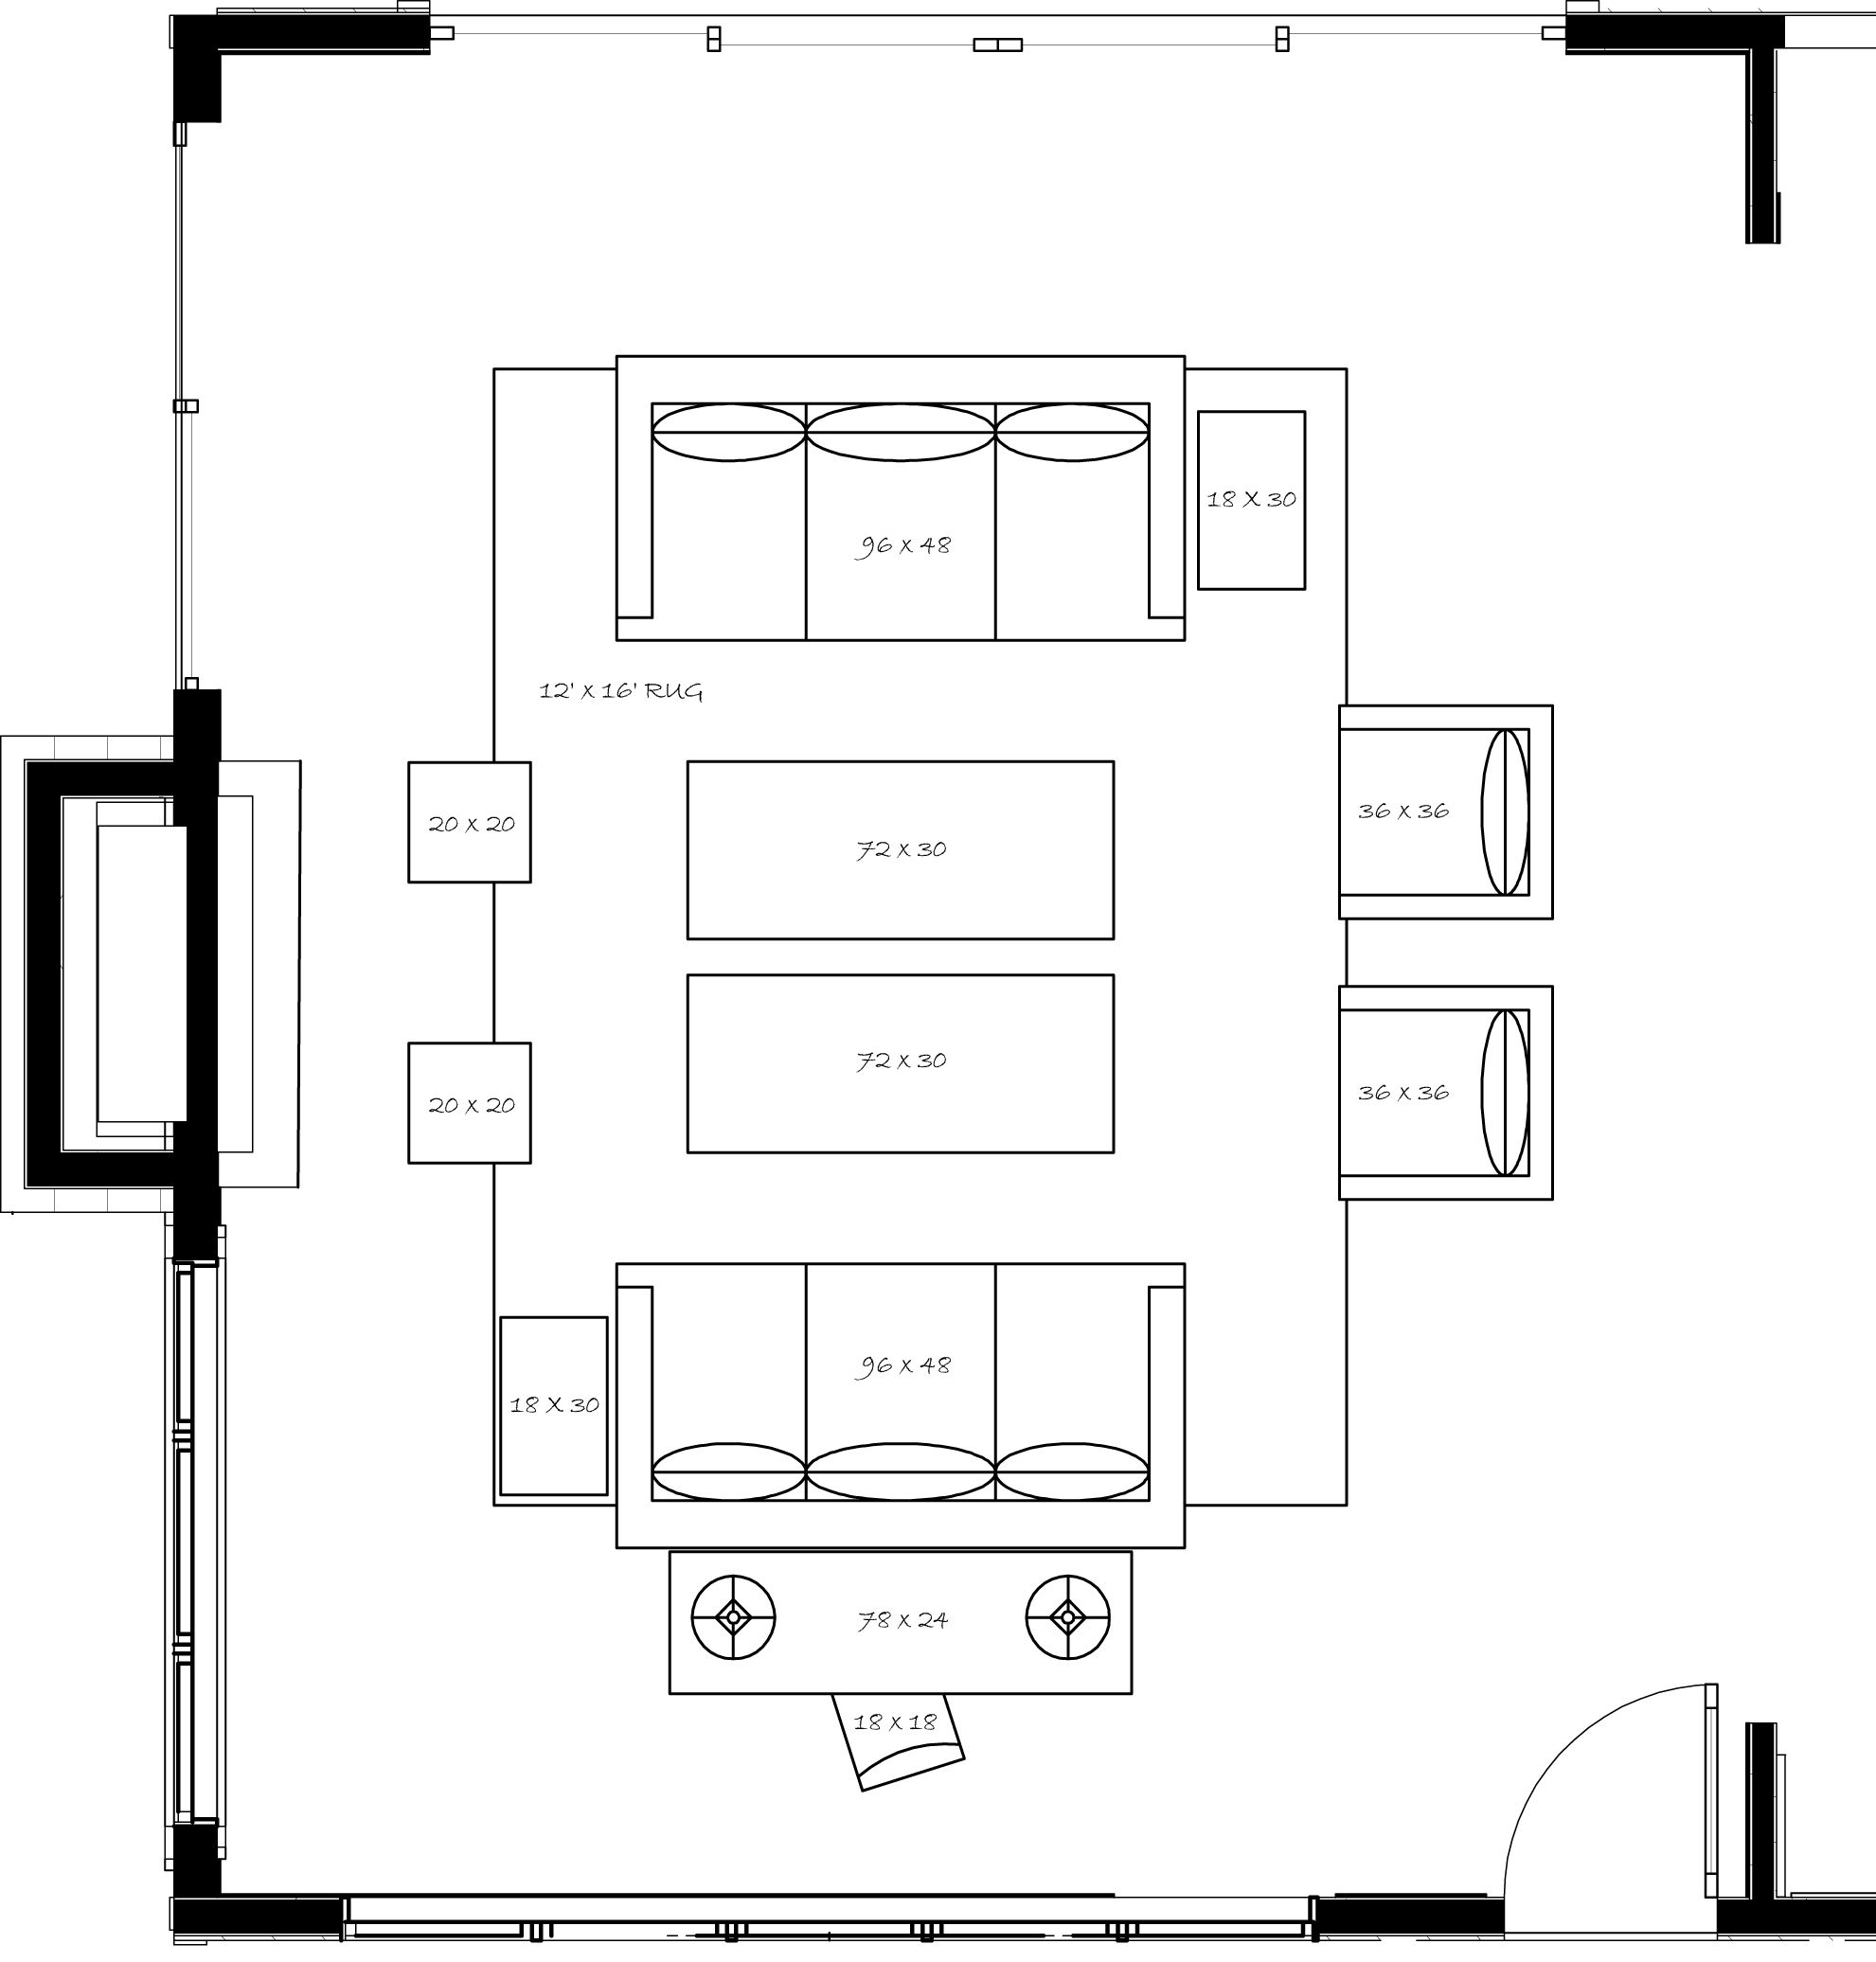 maxyourspace #livebig - ideal floor plan for large rooms. 2 sofas, 2 ...